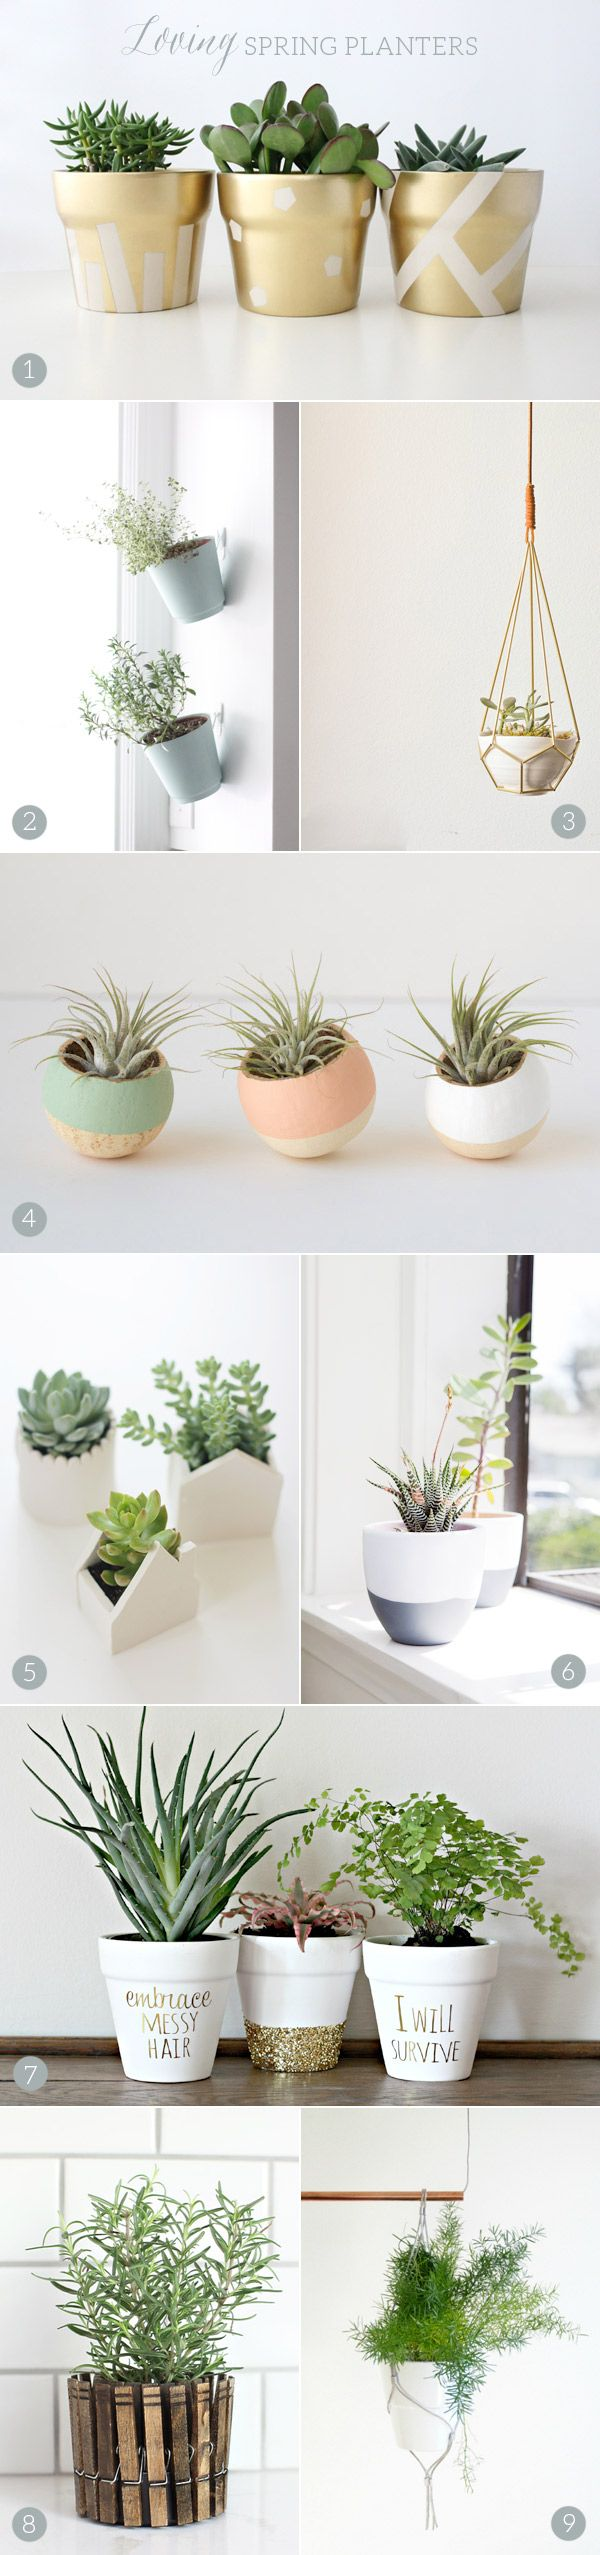 Adorable DIY planters that will add a pop of color to your home year-round